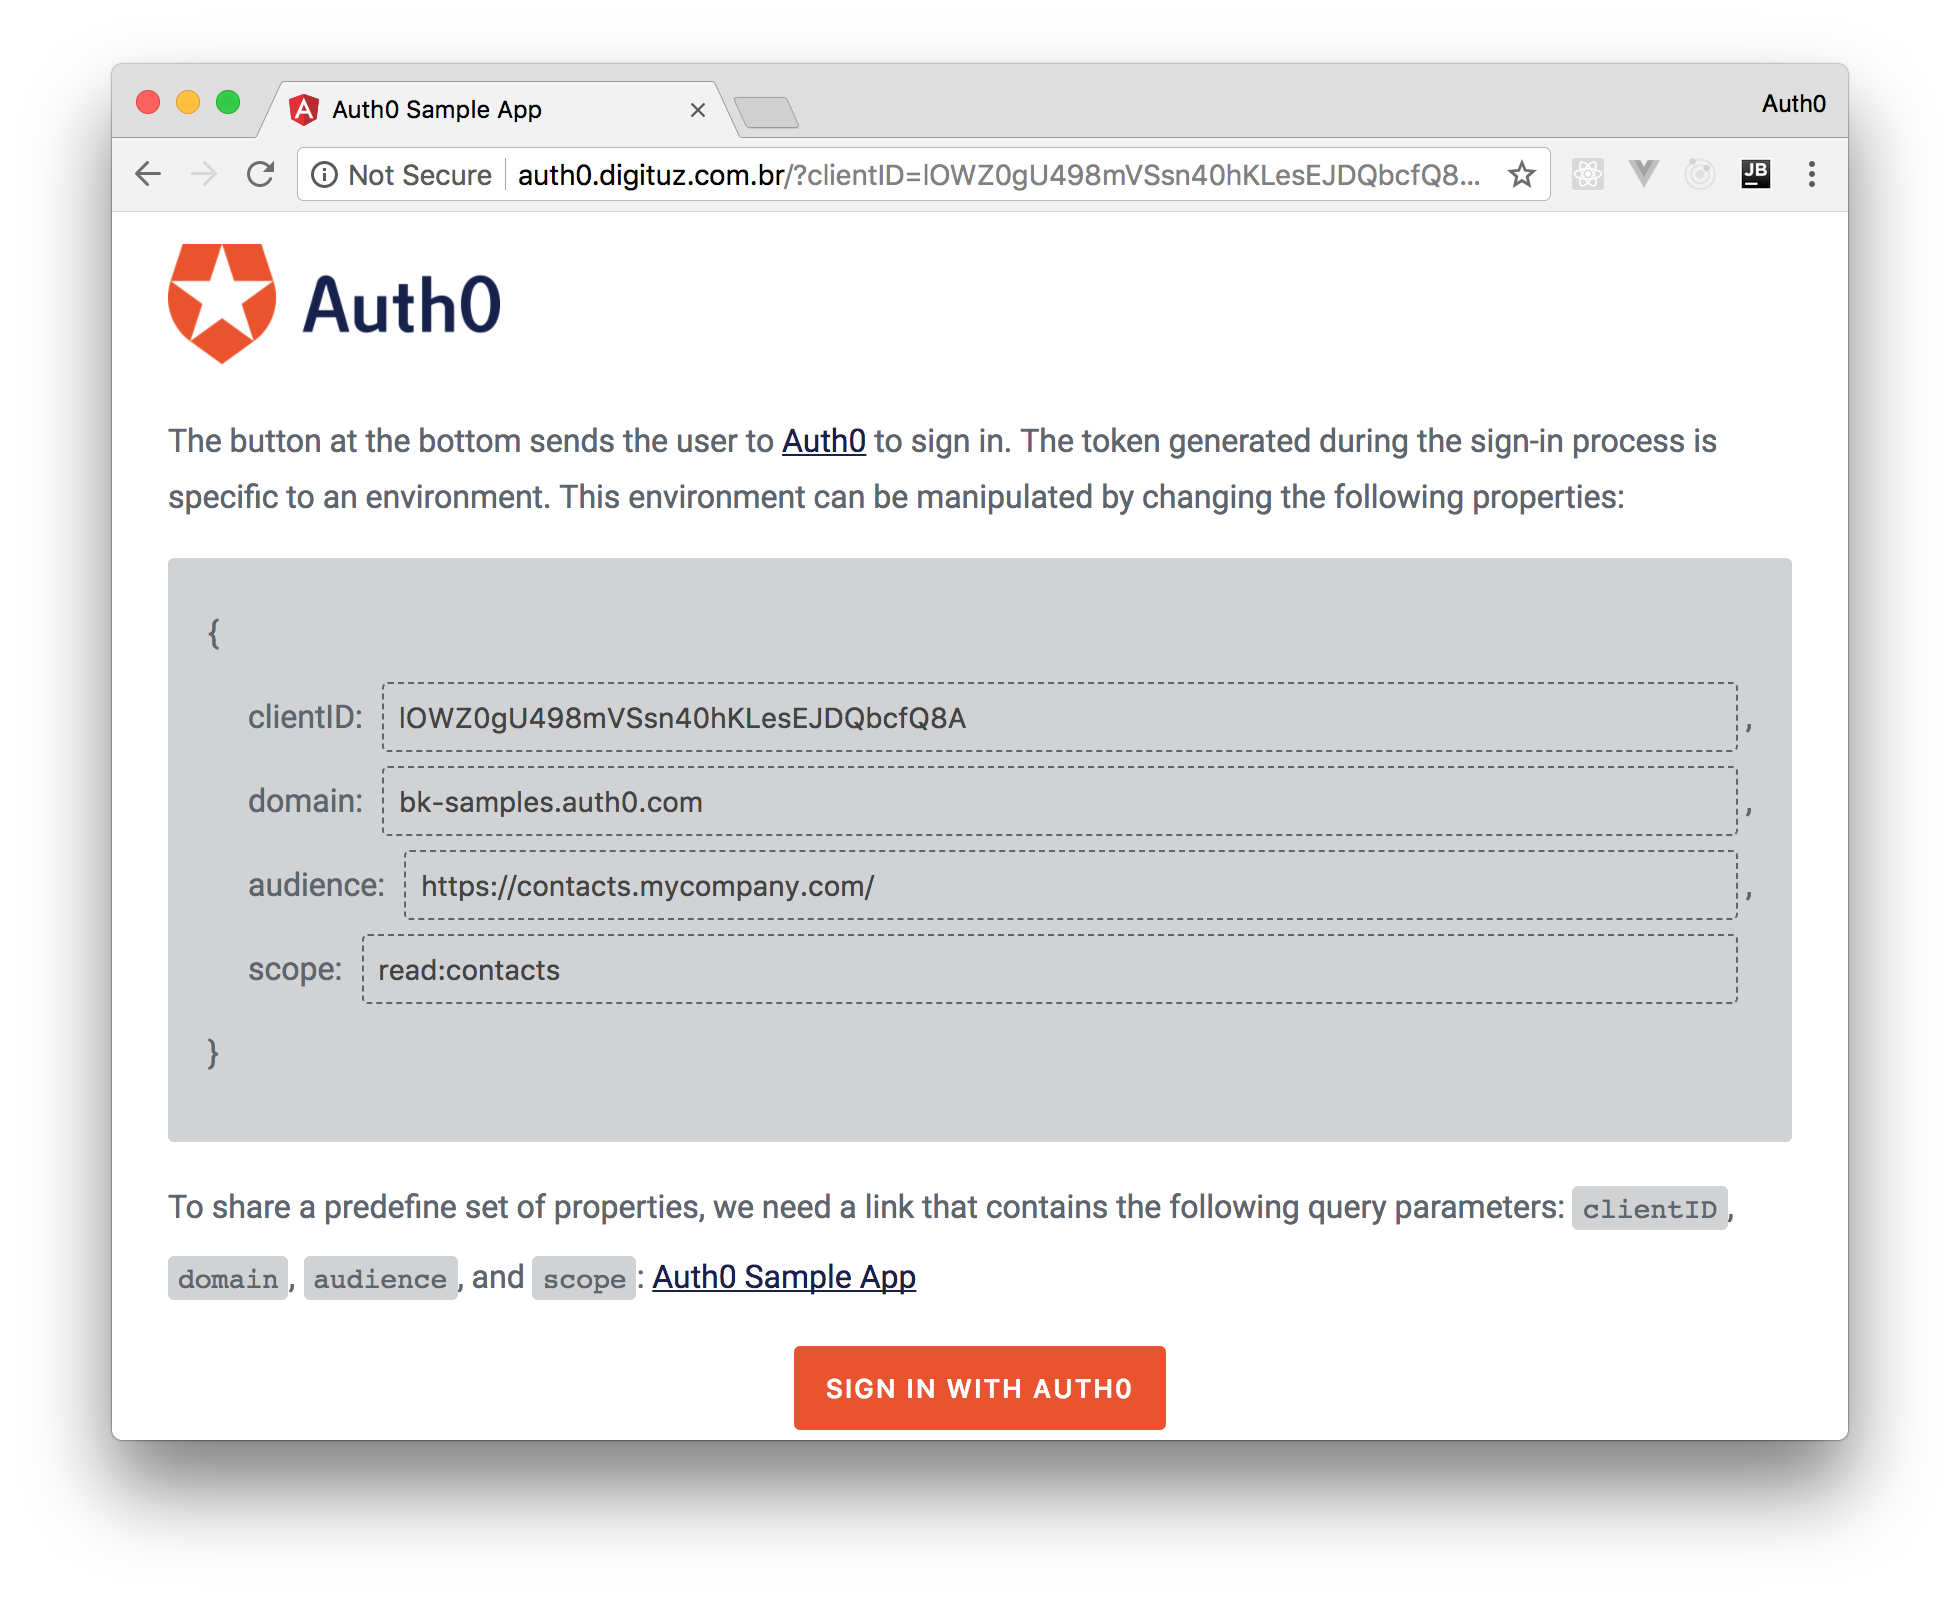 Using the Angular app with the configurable Auth0 application